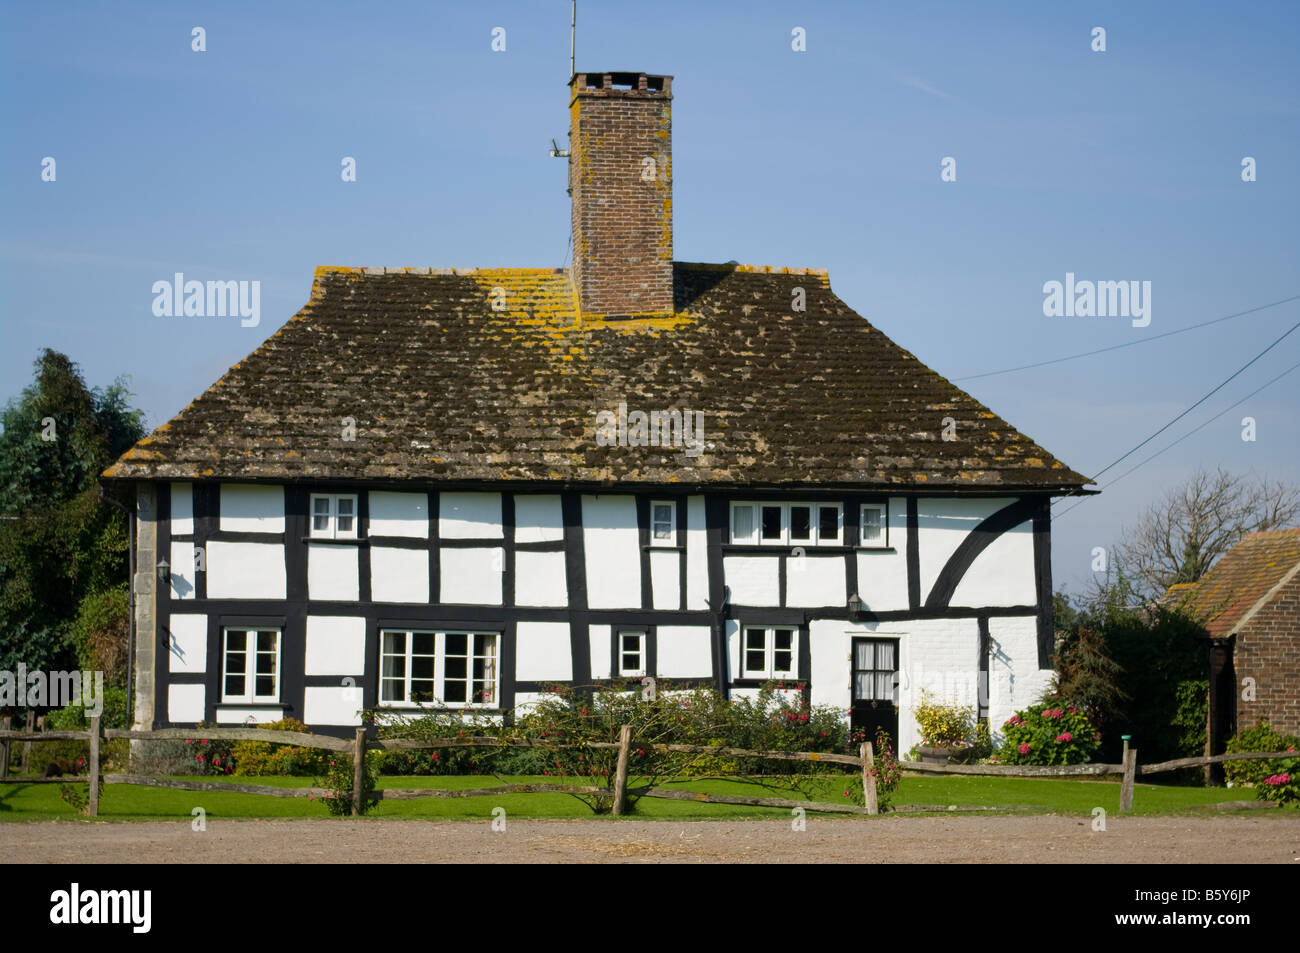 Edmunds country detached tudor style Farmhouse Ardingly West Sussex - Stock Image